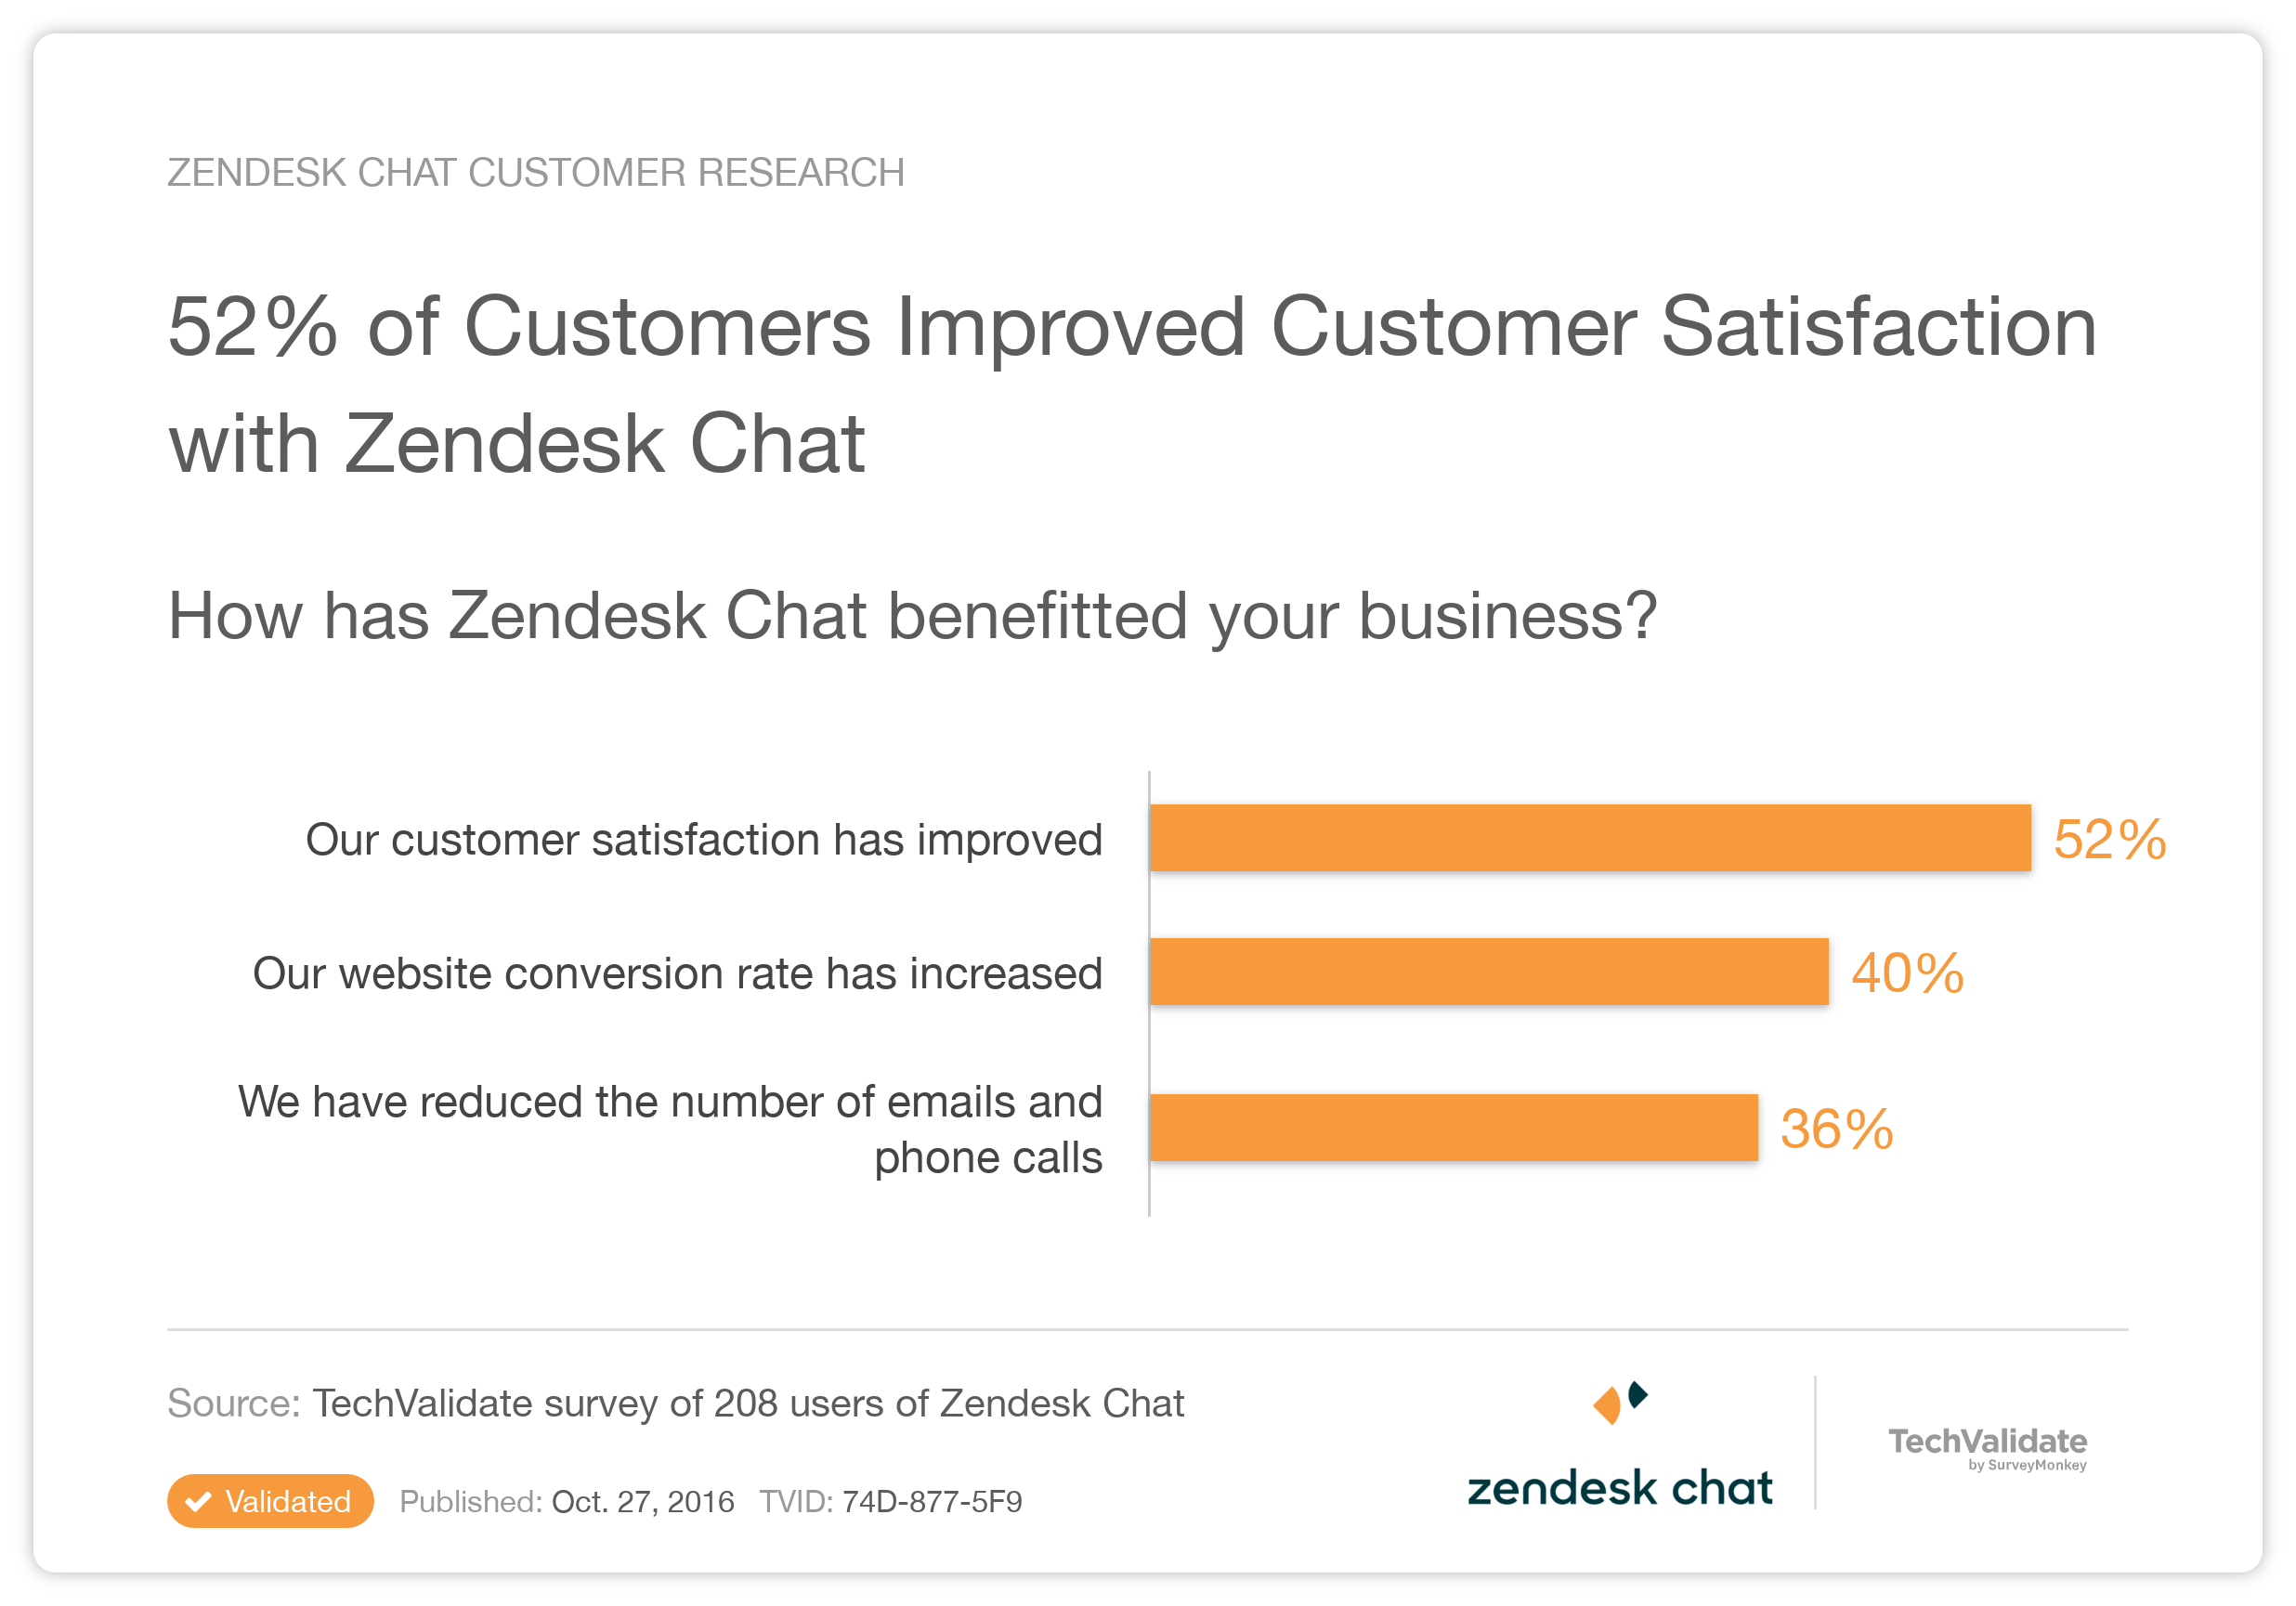 Zendesk Chat Research Chart: 52% of Customers Improved